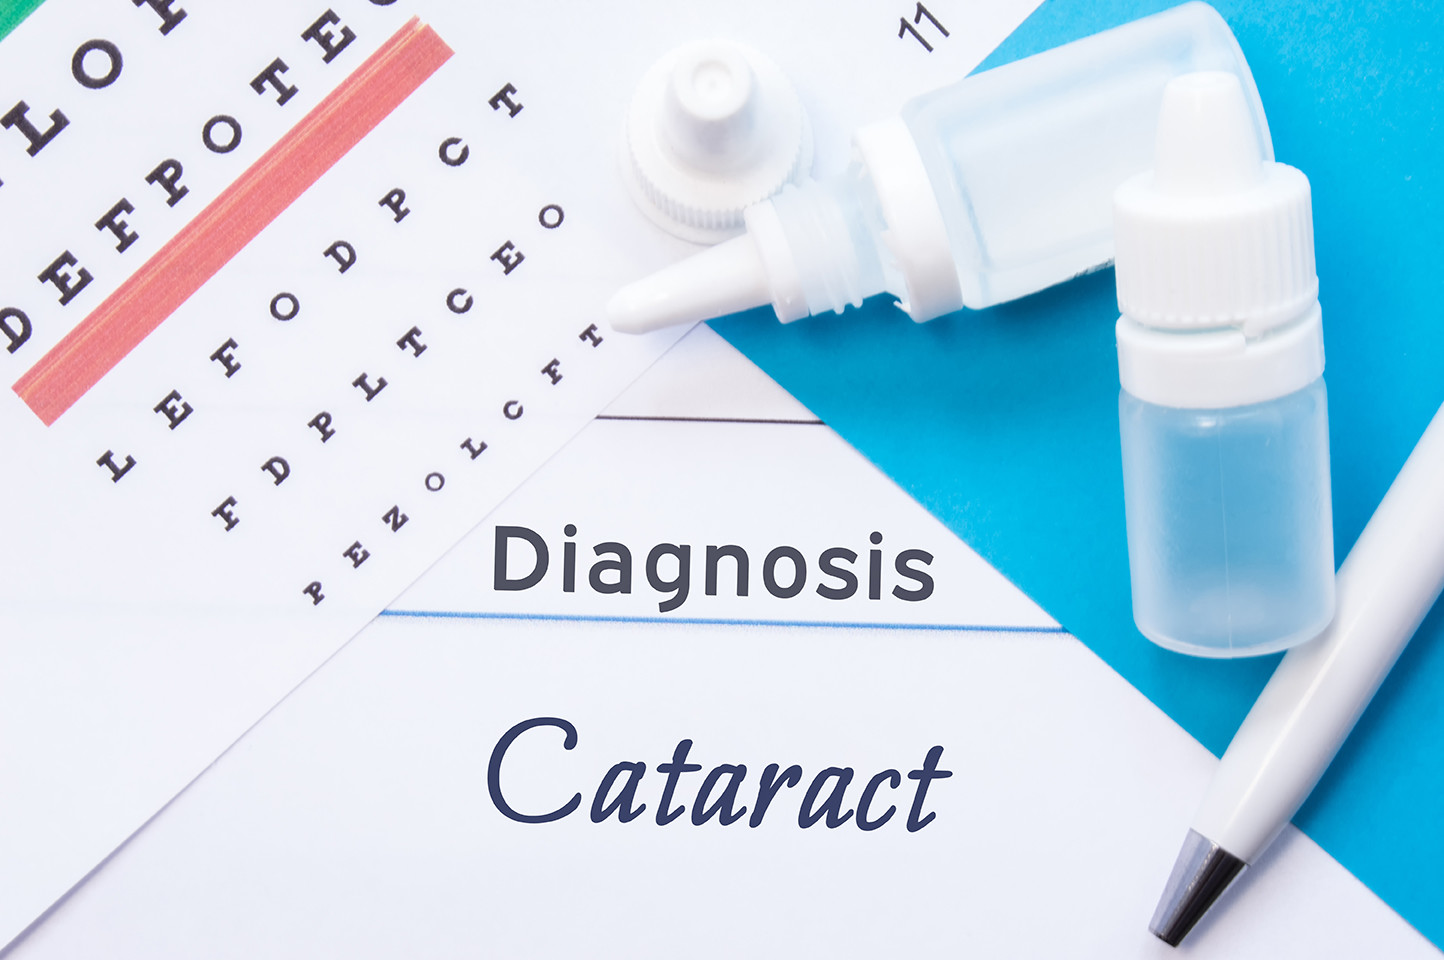 Diagnosis of diabetic cataracts